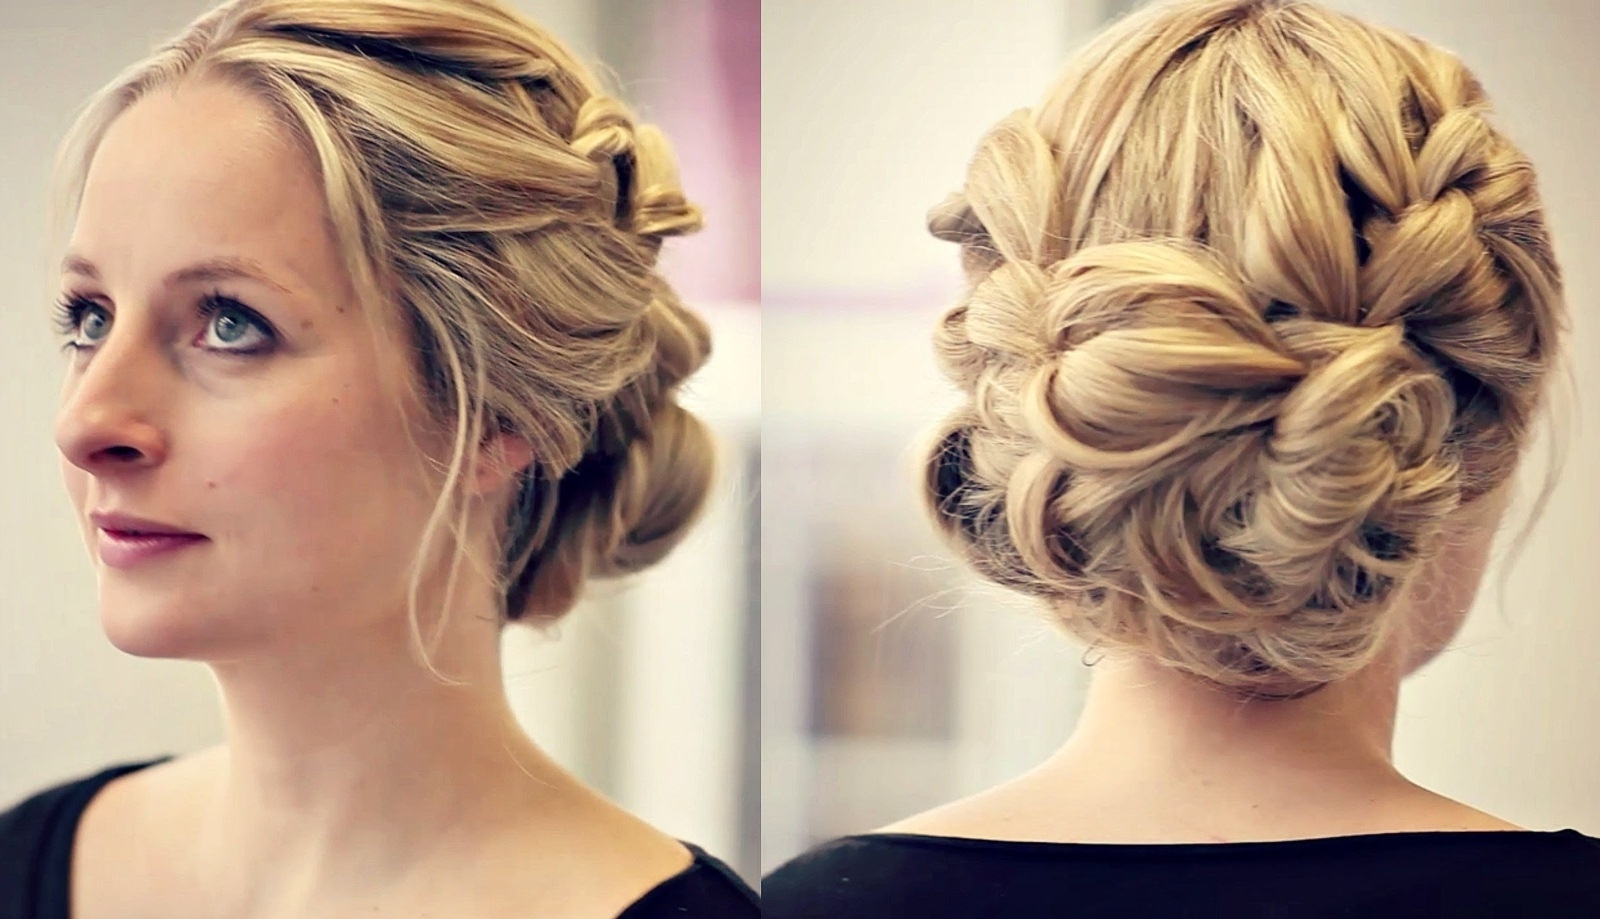 Updo Hairstyles For Weddings Mother Of The Bride – Hairstyle For In Short Wedding Updo Hairstyles (Gallery 2 of 15)